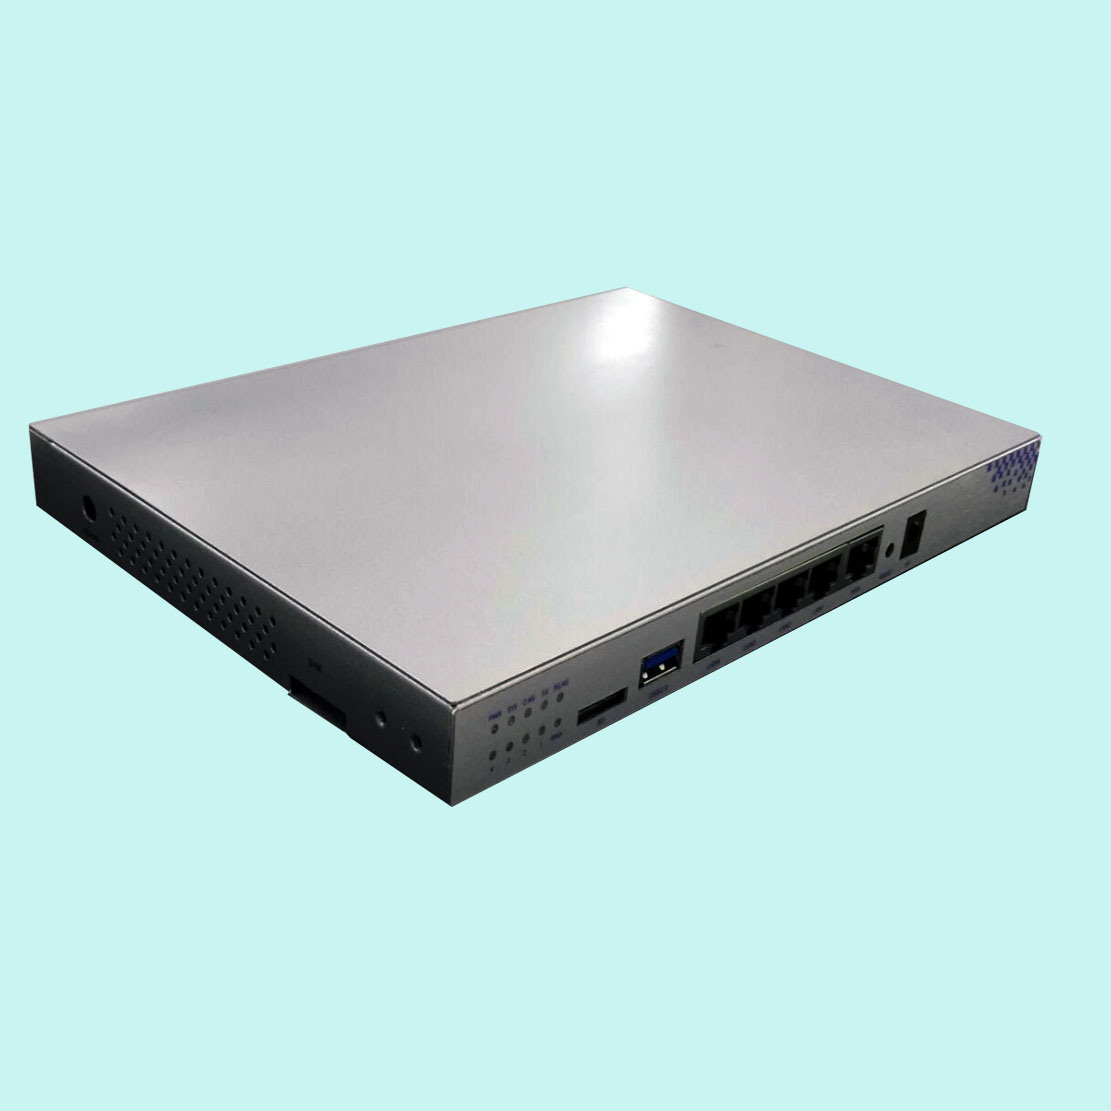 1200Mbps Wireless Router full Gigabit USB3.0 and SD Storage Support 3/4G Function (TS601F)